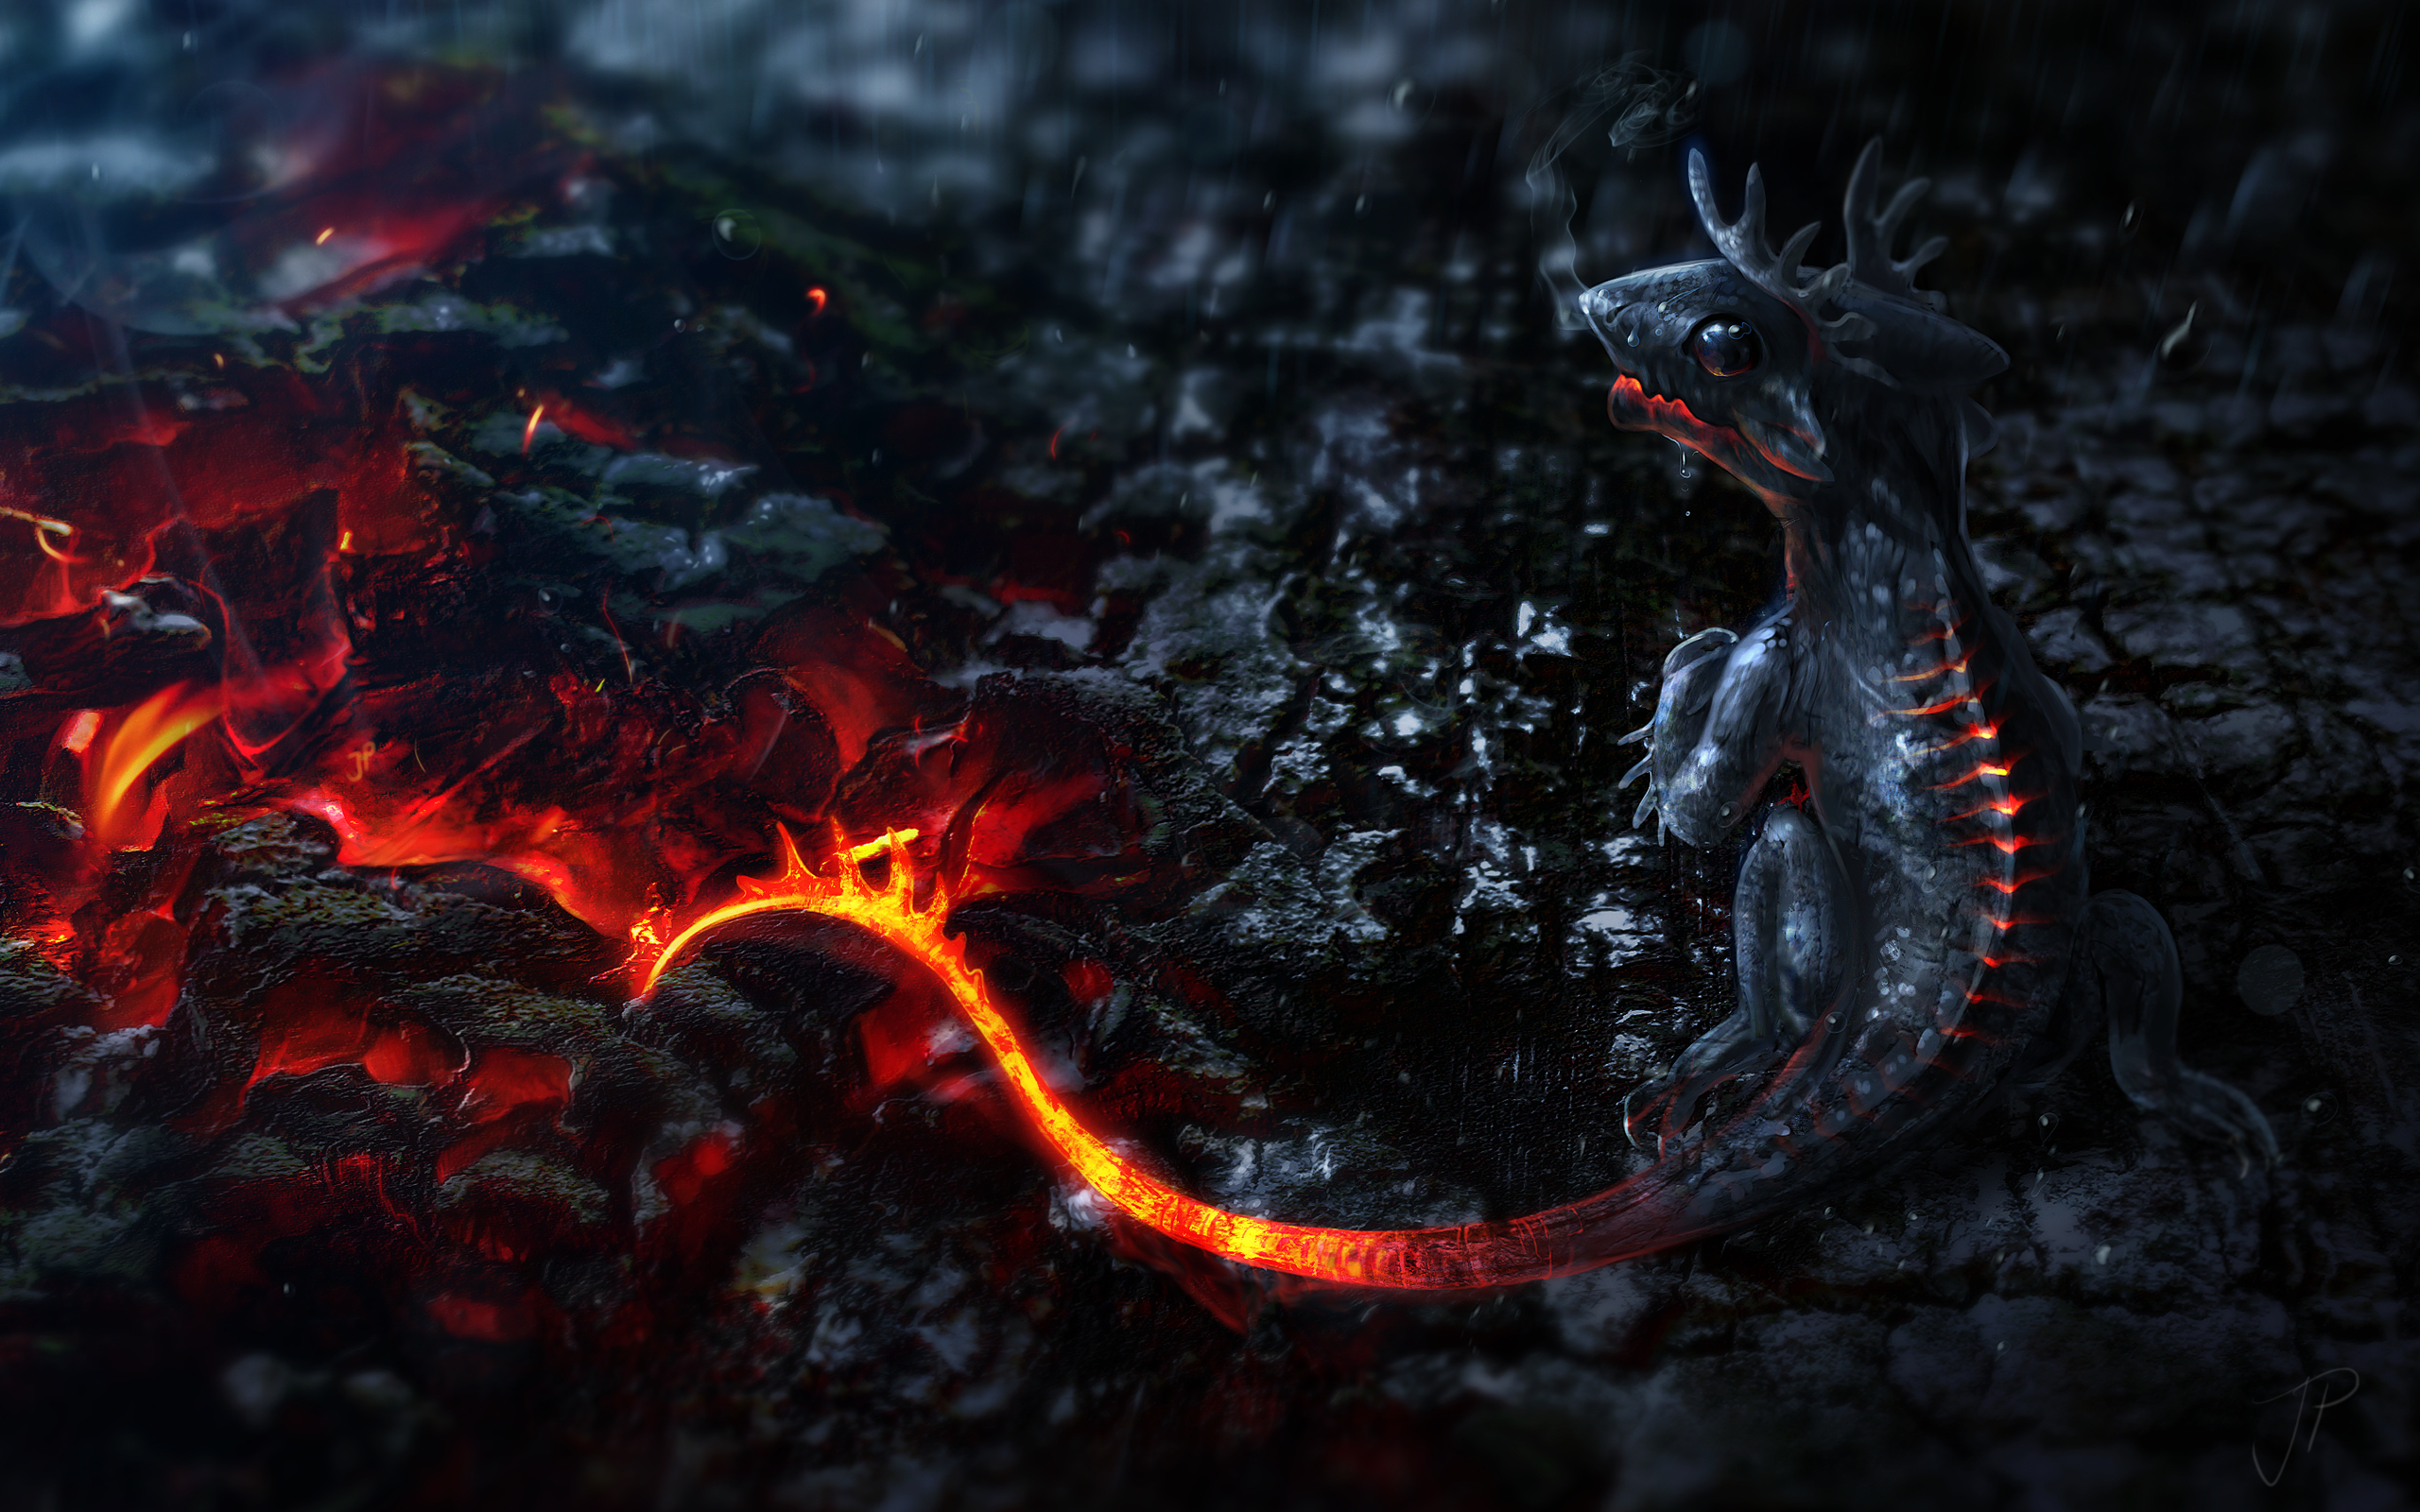 Mythical Creatures Artwork Small Dragons Tails Fire Lava 2560x1600